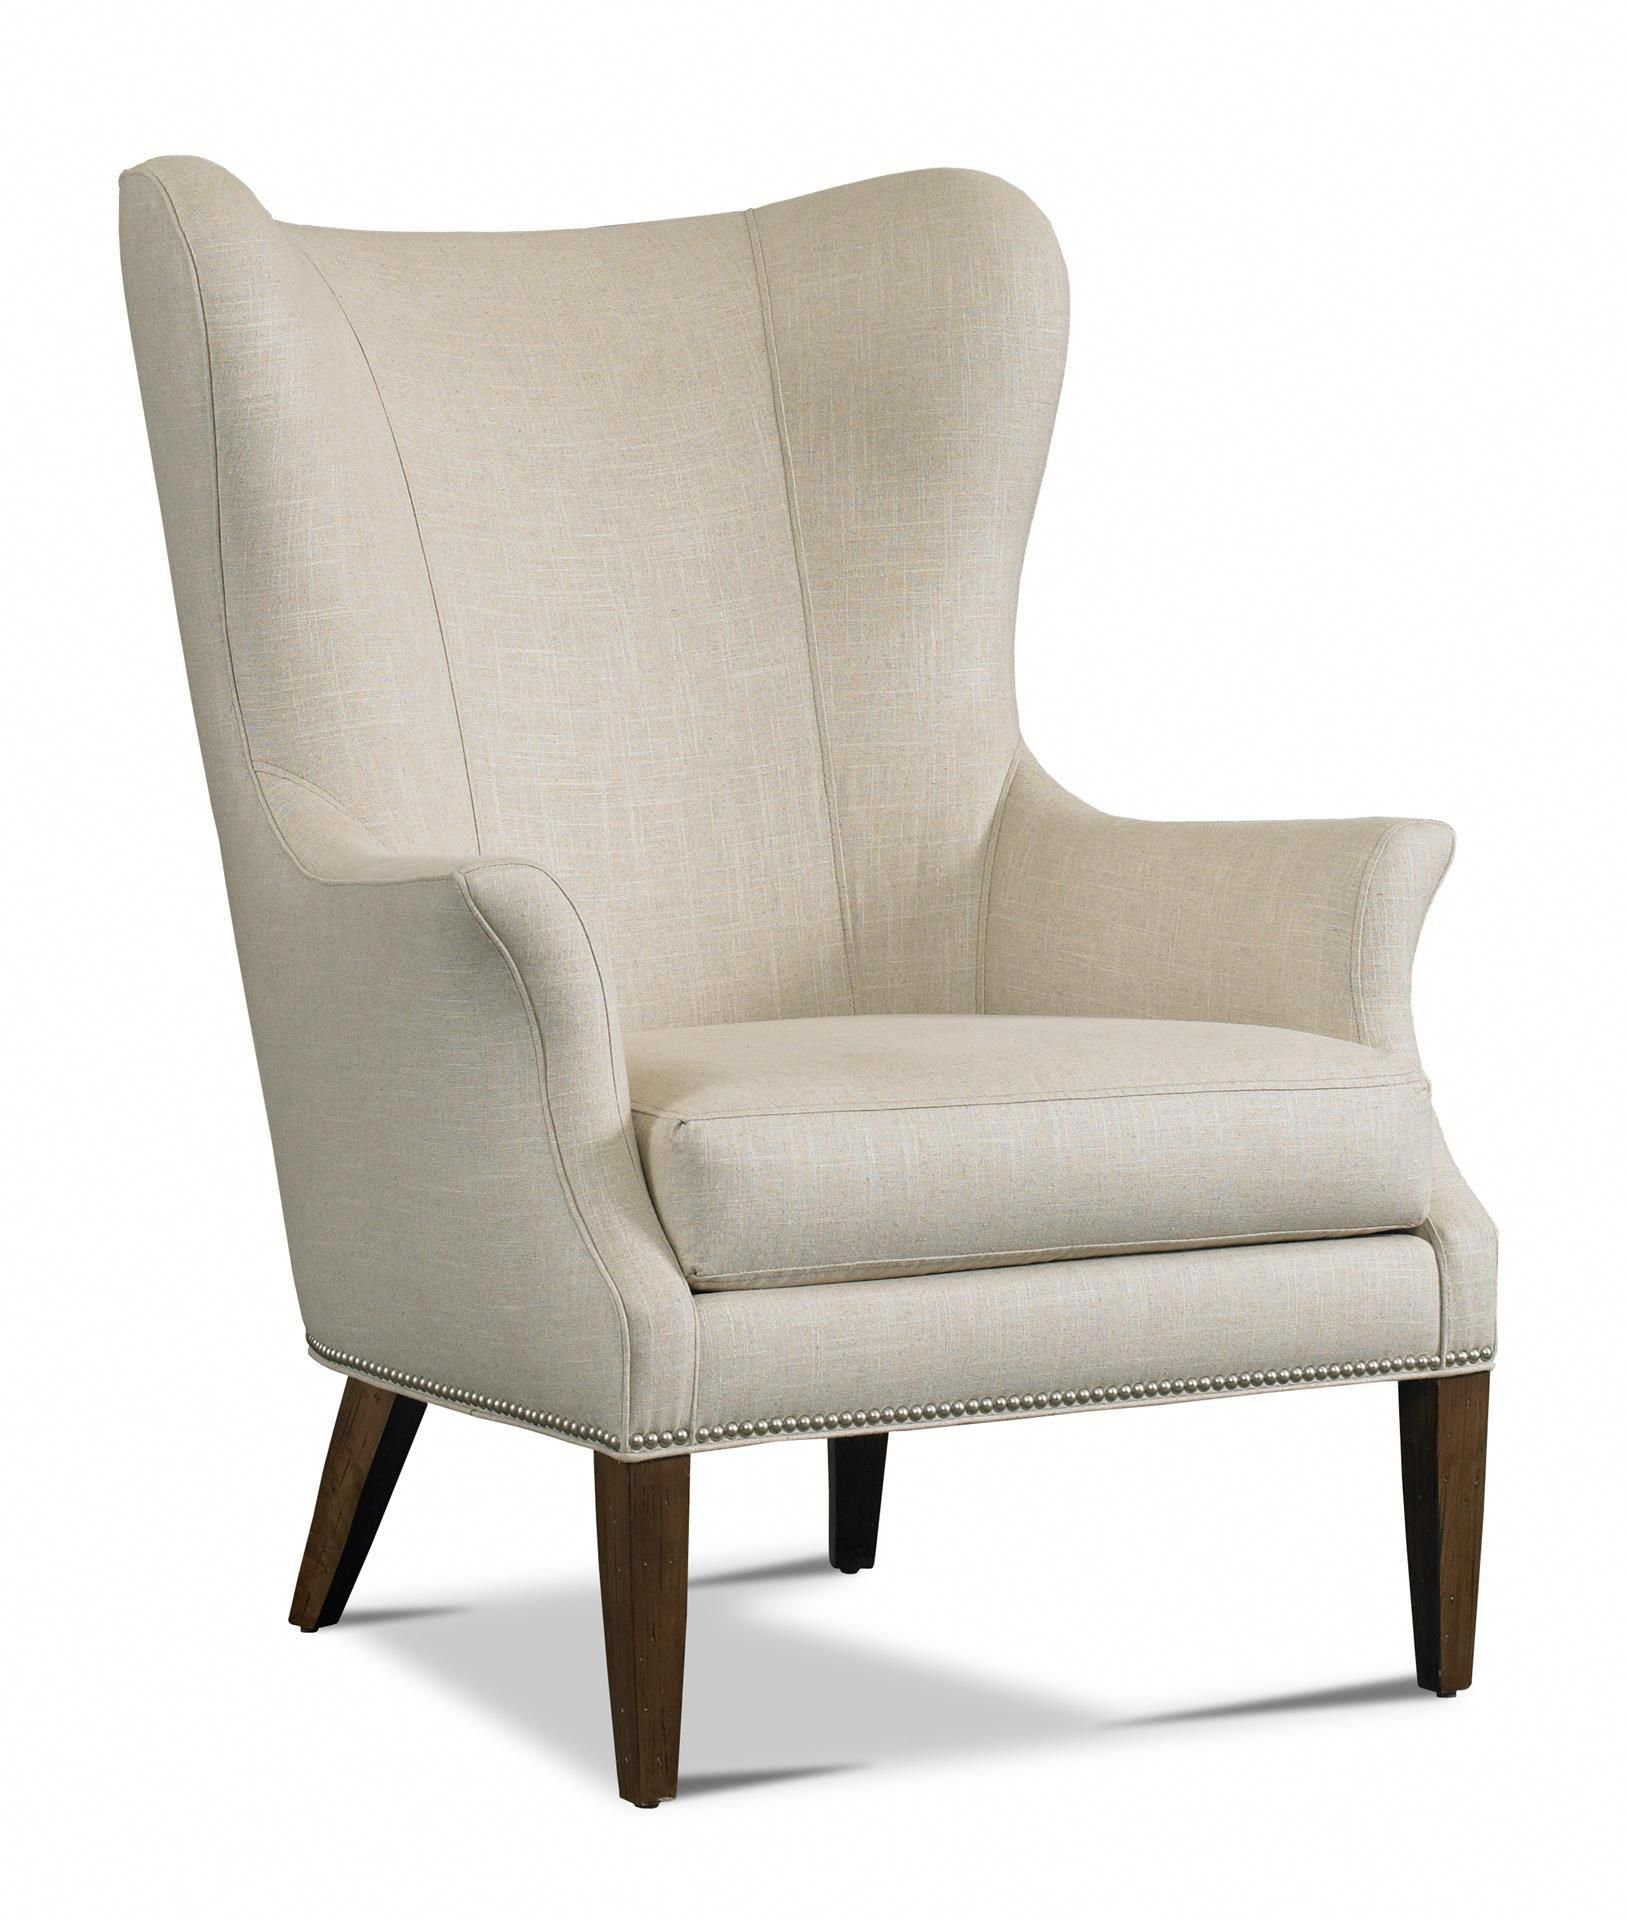 Tristen Chair The Tristen Chair By Precedent Offers A Gentle Wing